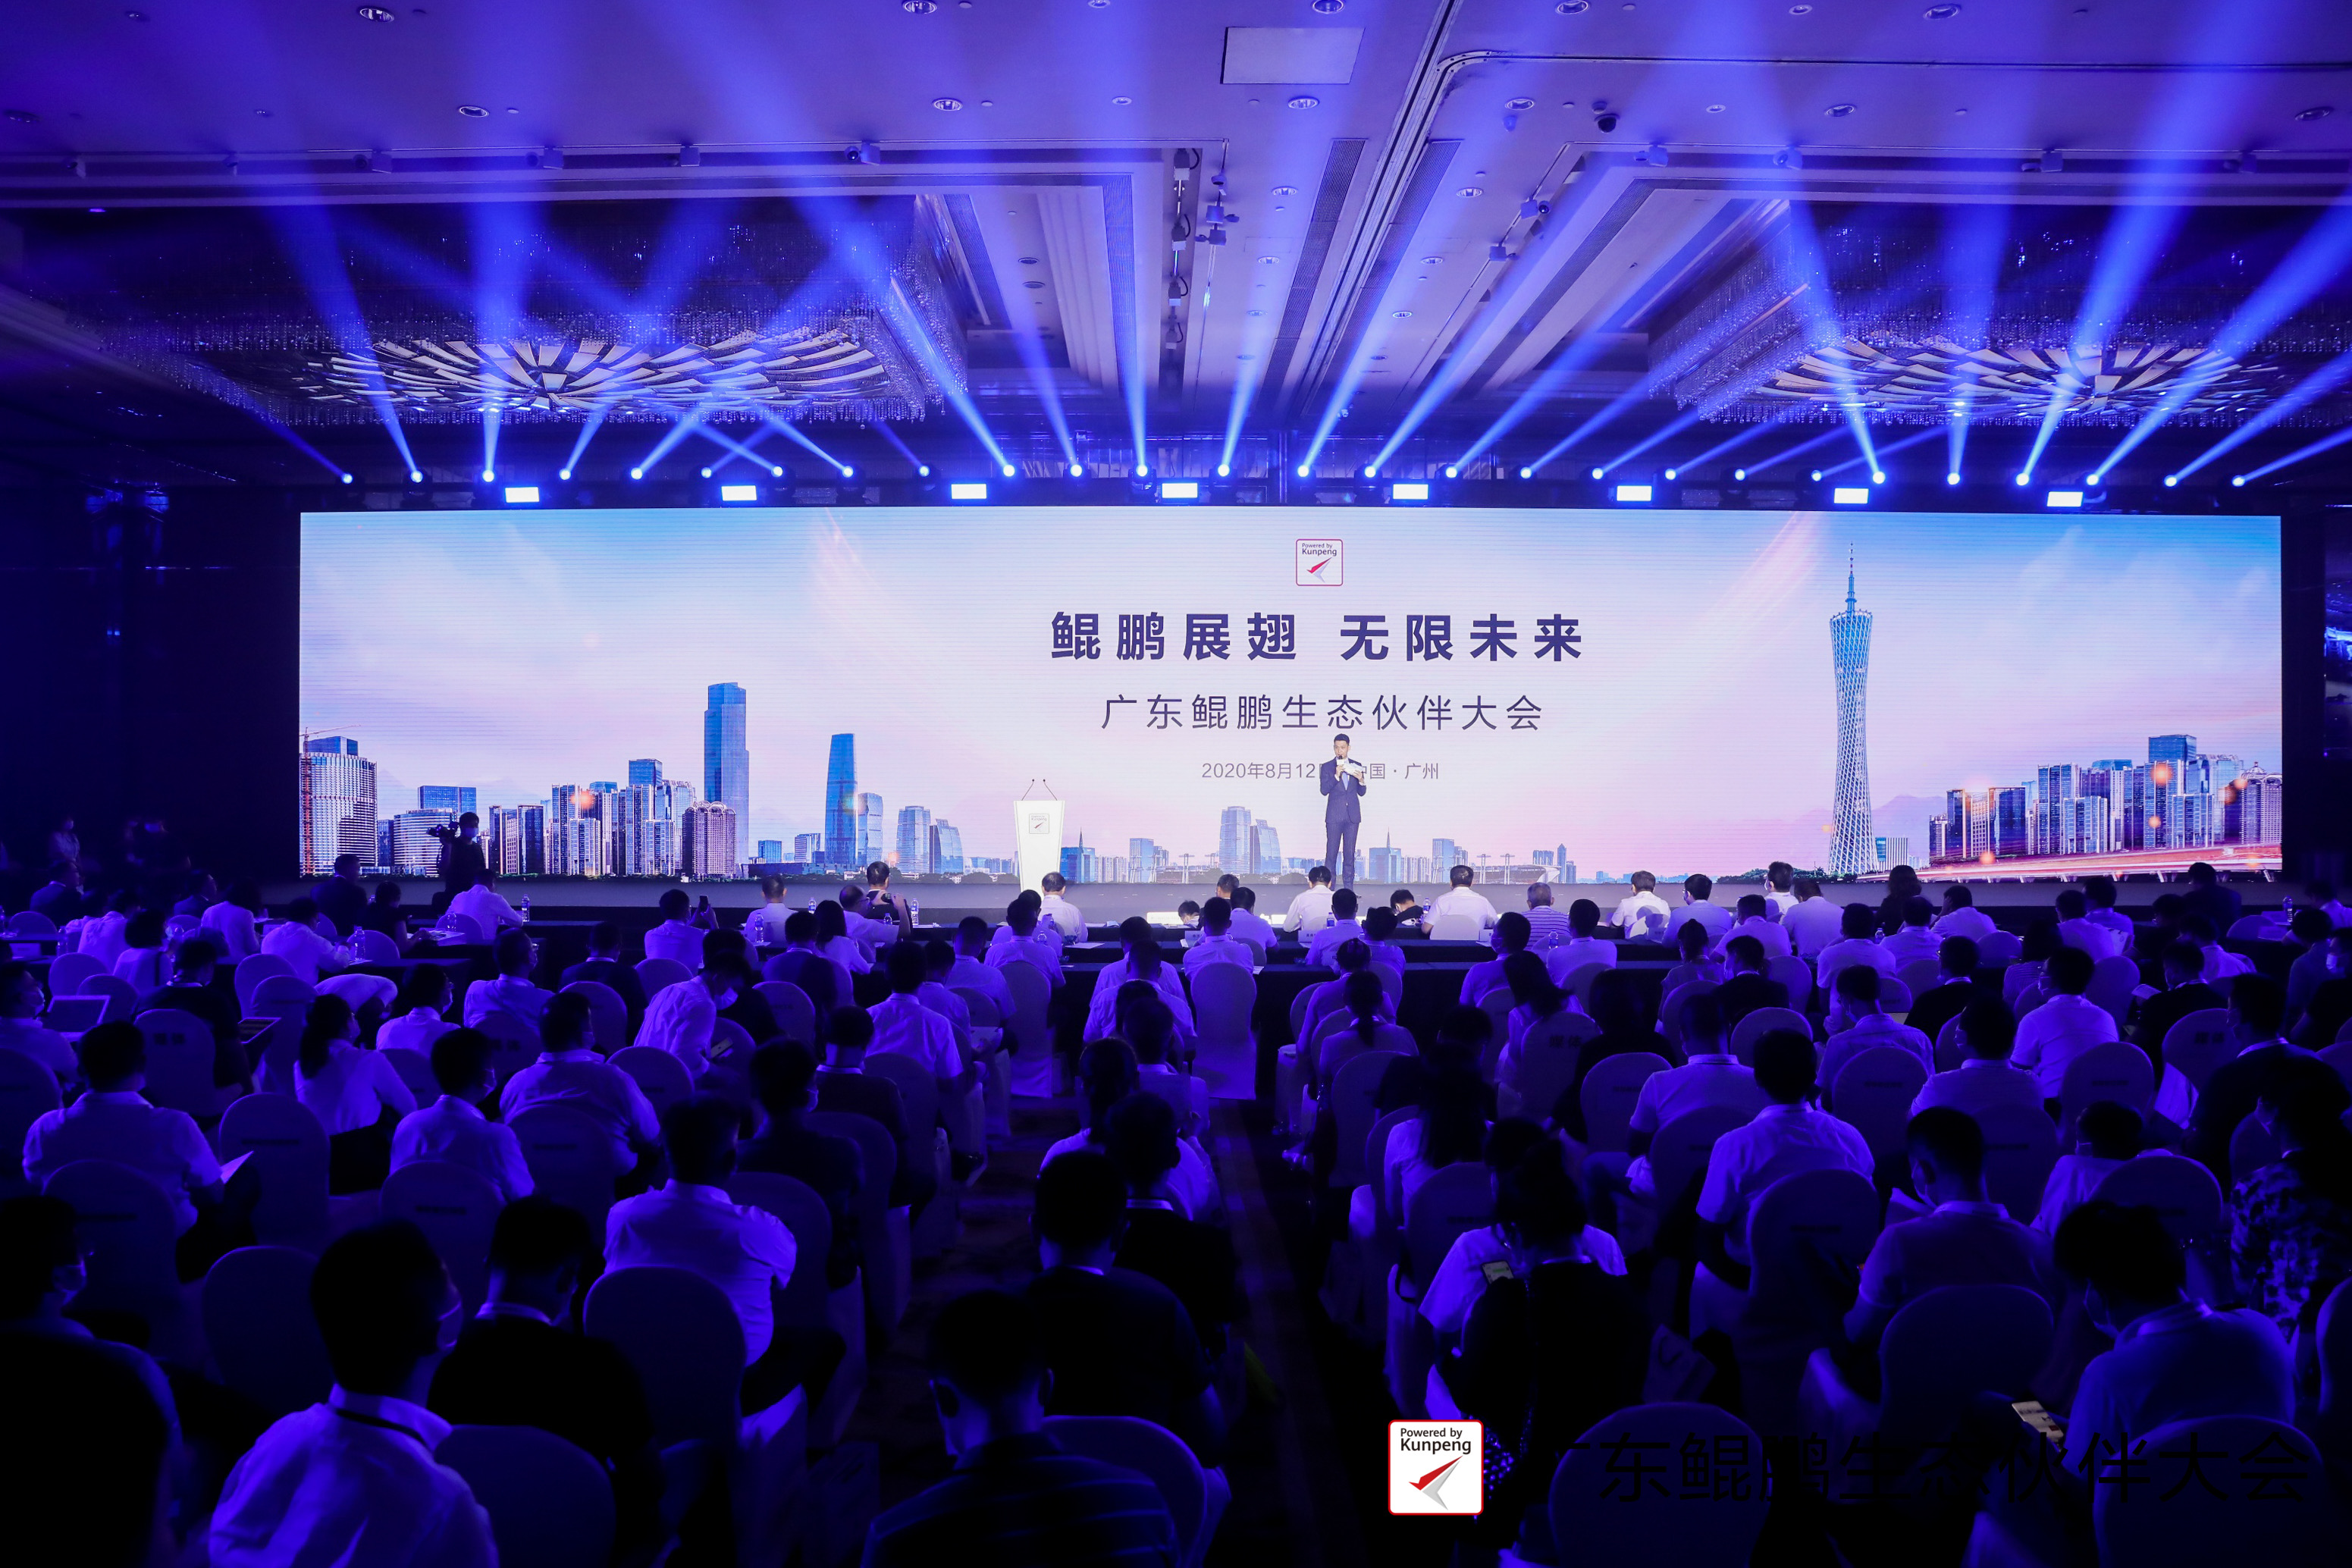 KUNPENG ECOLOGICAL PARTNER CONFERENCE GUANGZHOU 2020